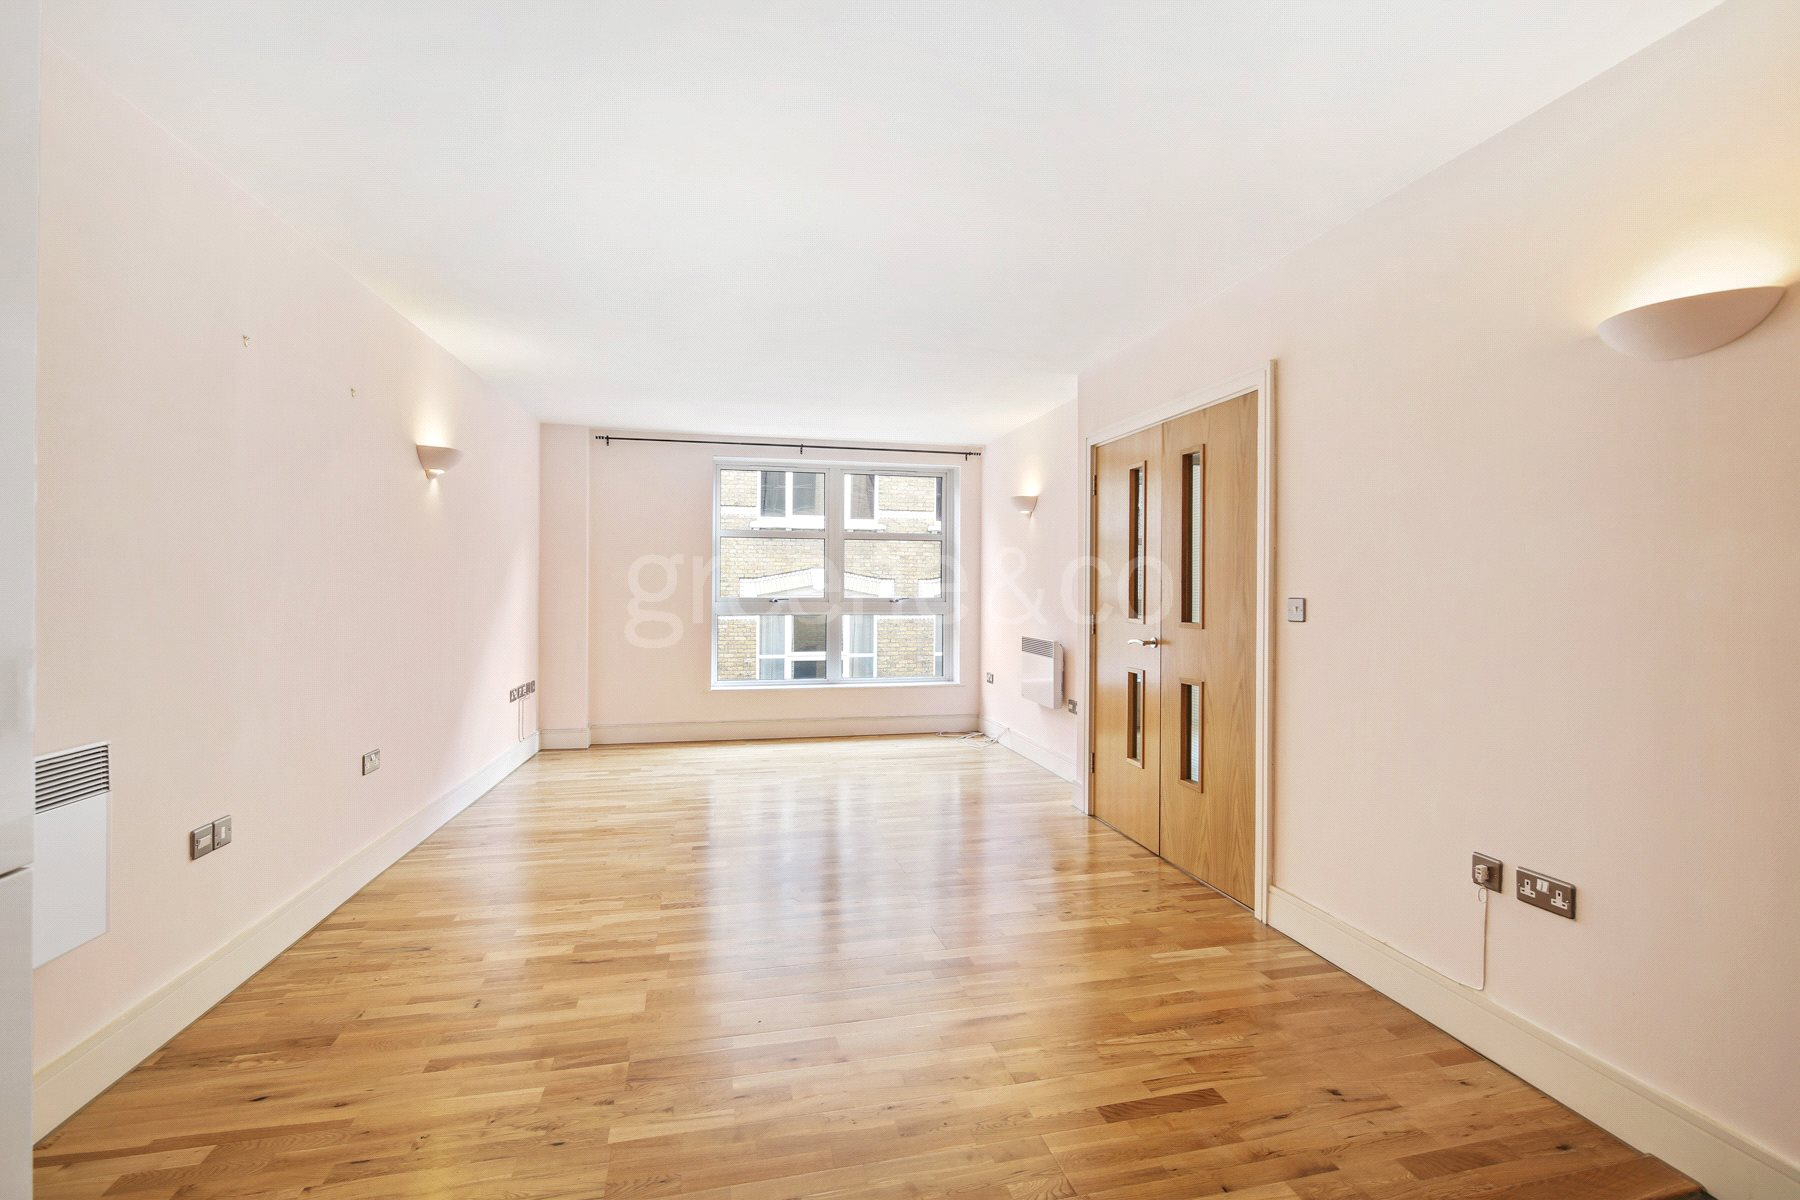 2 Bedrooms House for sale in Black Bull Court, 18 Hatton Wall, London, EC1N